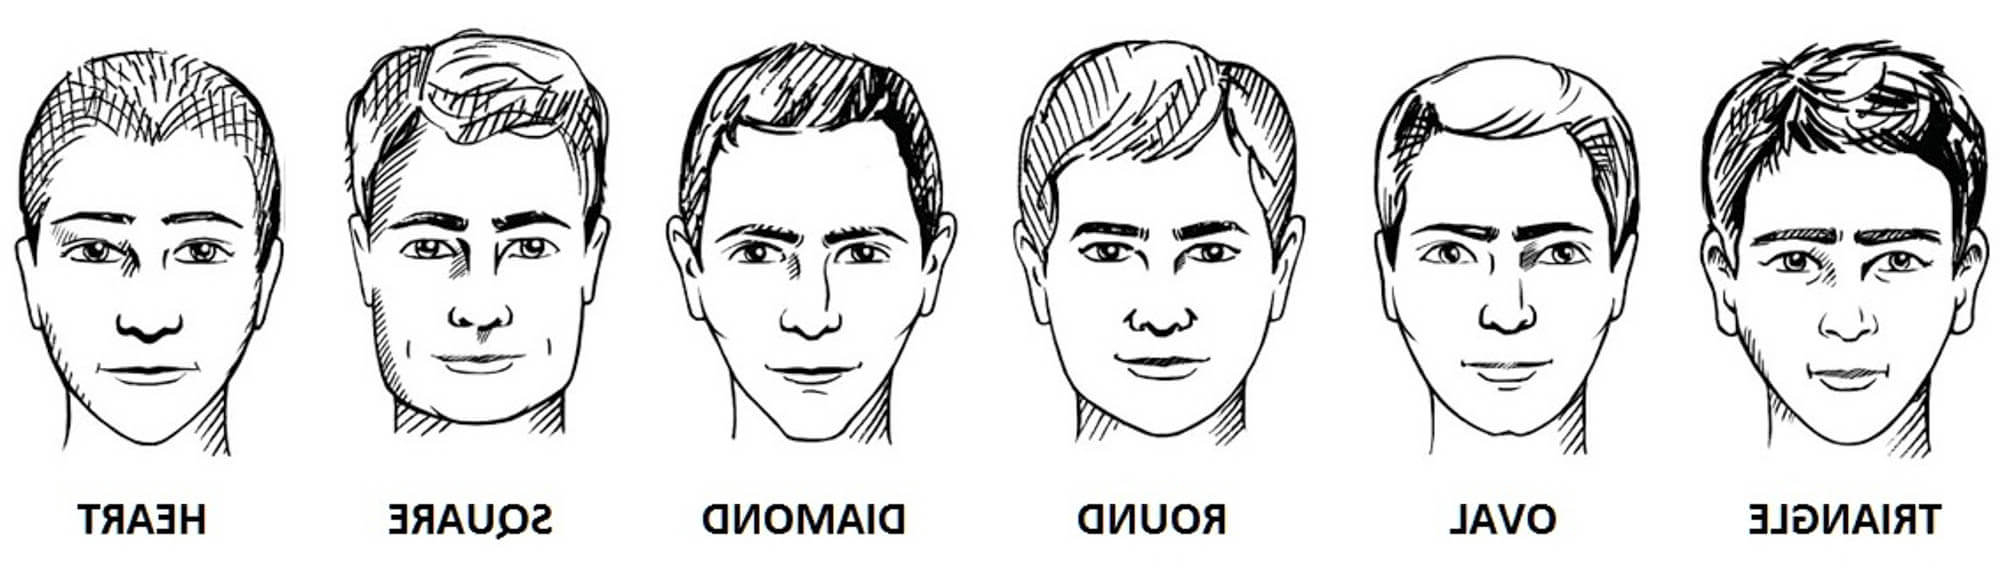 How To Get The Best Haircut For Your Face Shape — Gentleman's Gazette In Short Haircuts For Different Face Shapes (View 12 of 25)